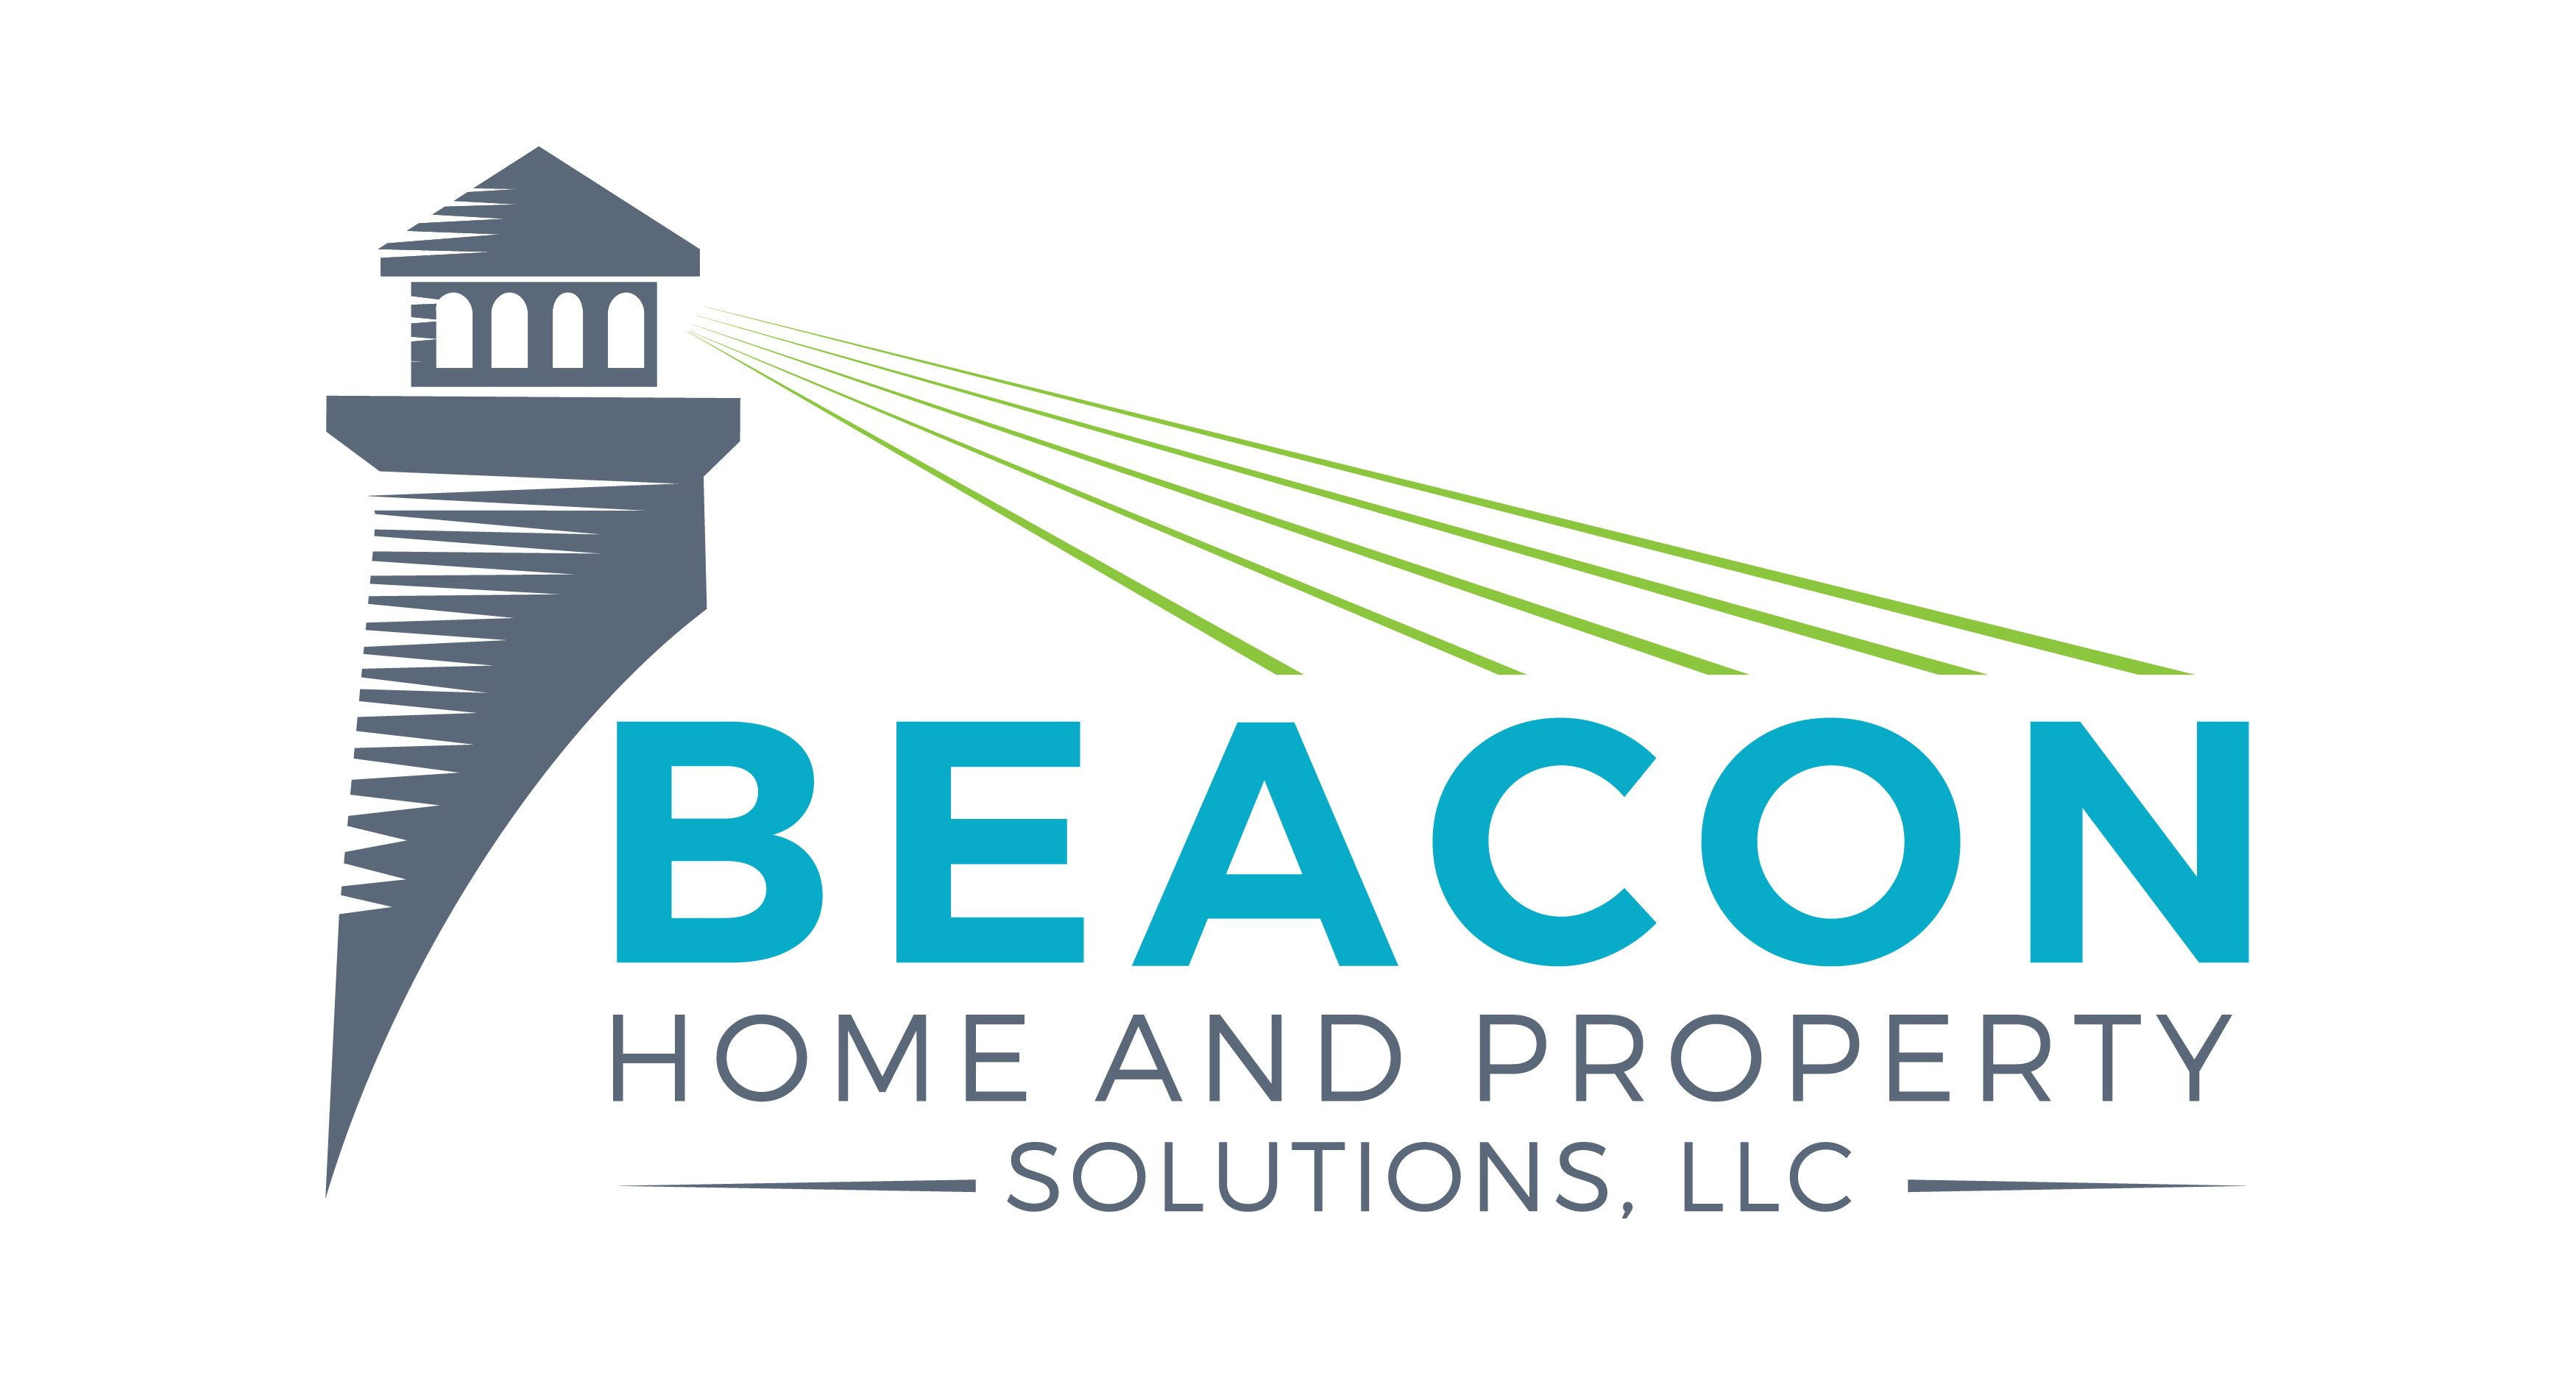 Beacon Home and Property Solutions, LLC